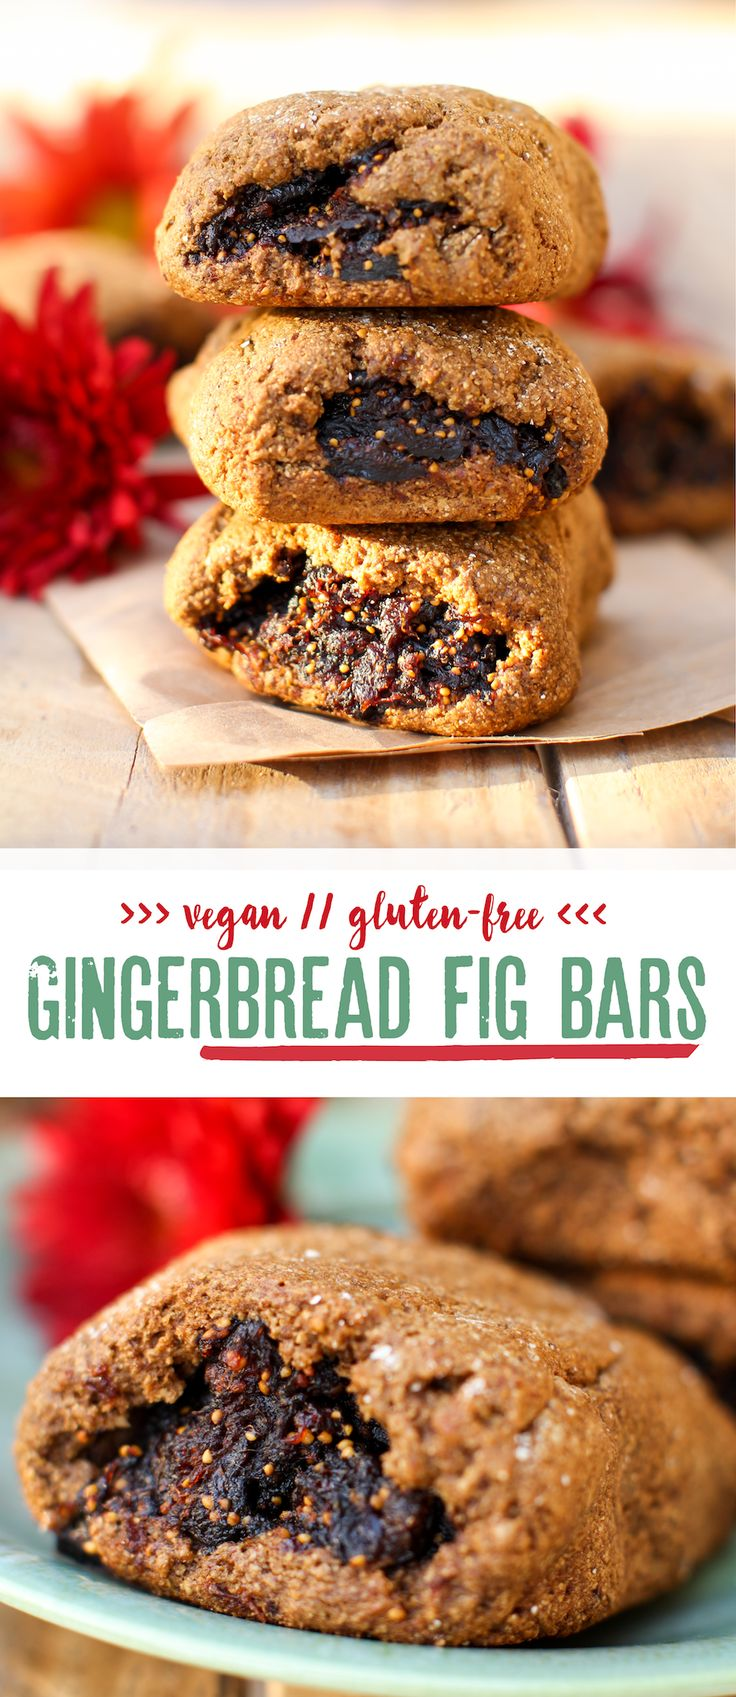 VEGAN (gluten free) Gingerbread Fig Bars